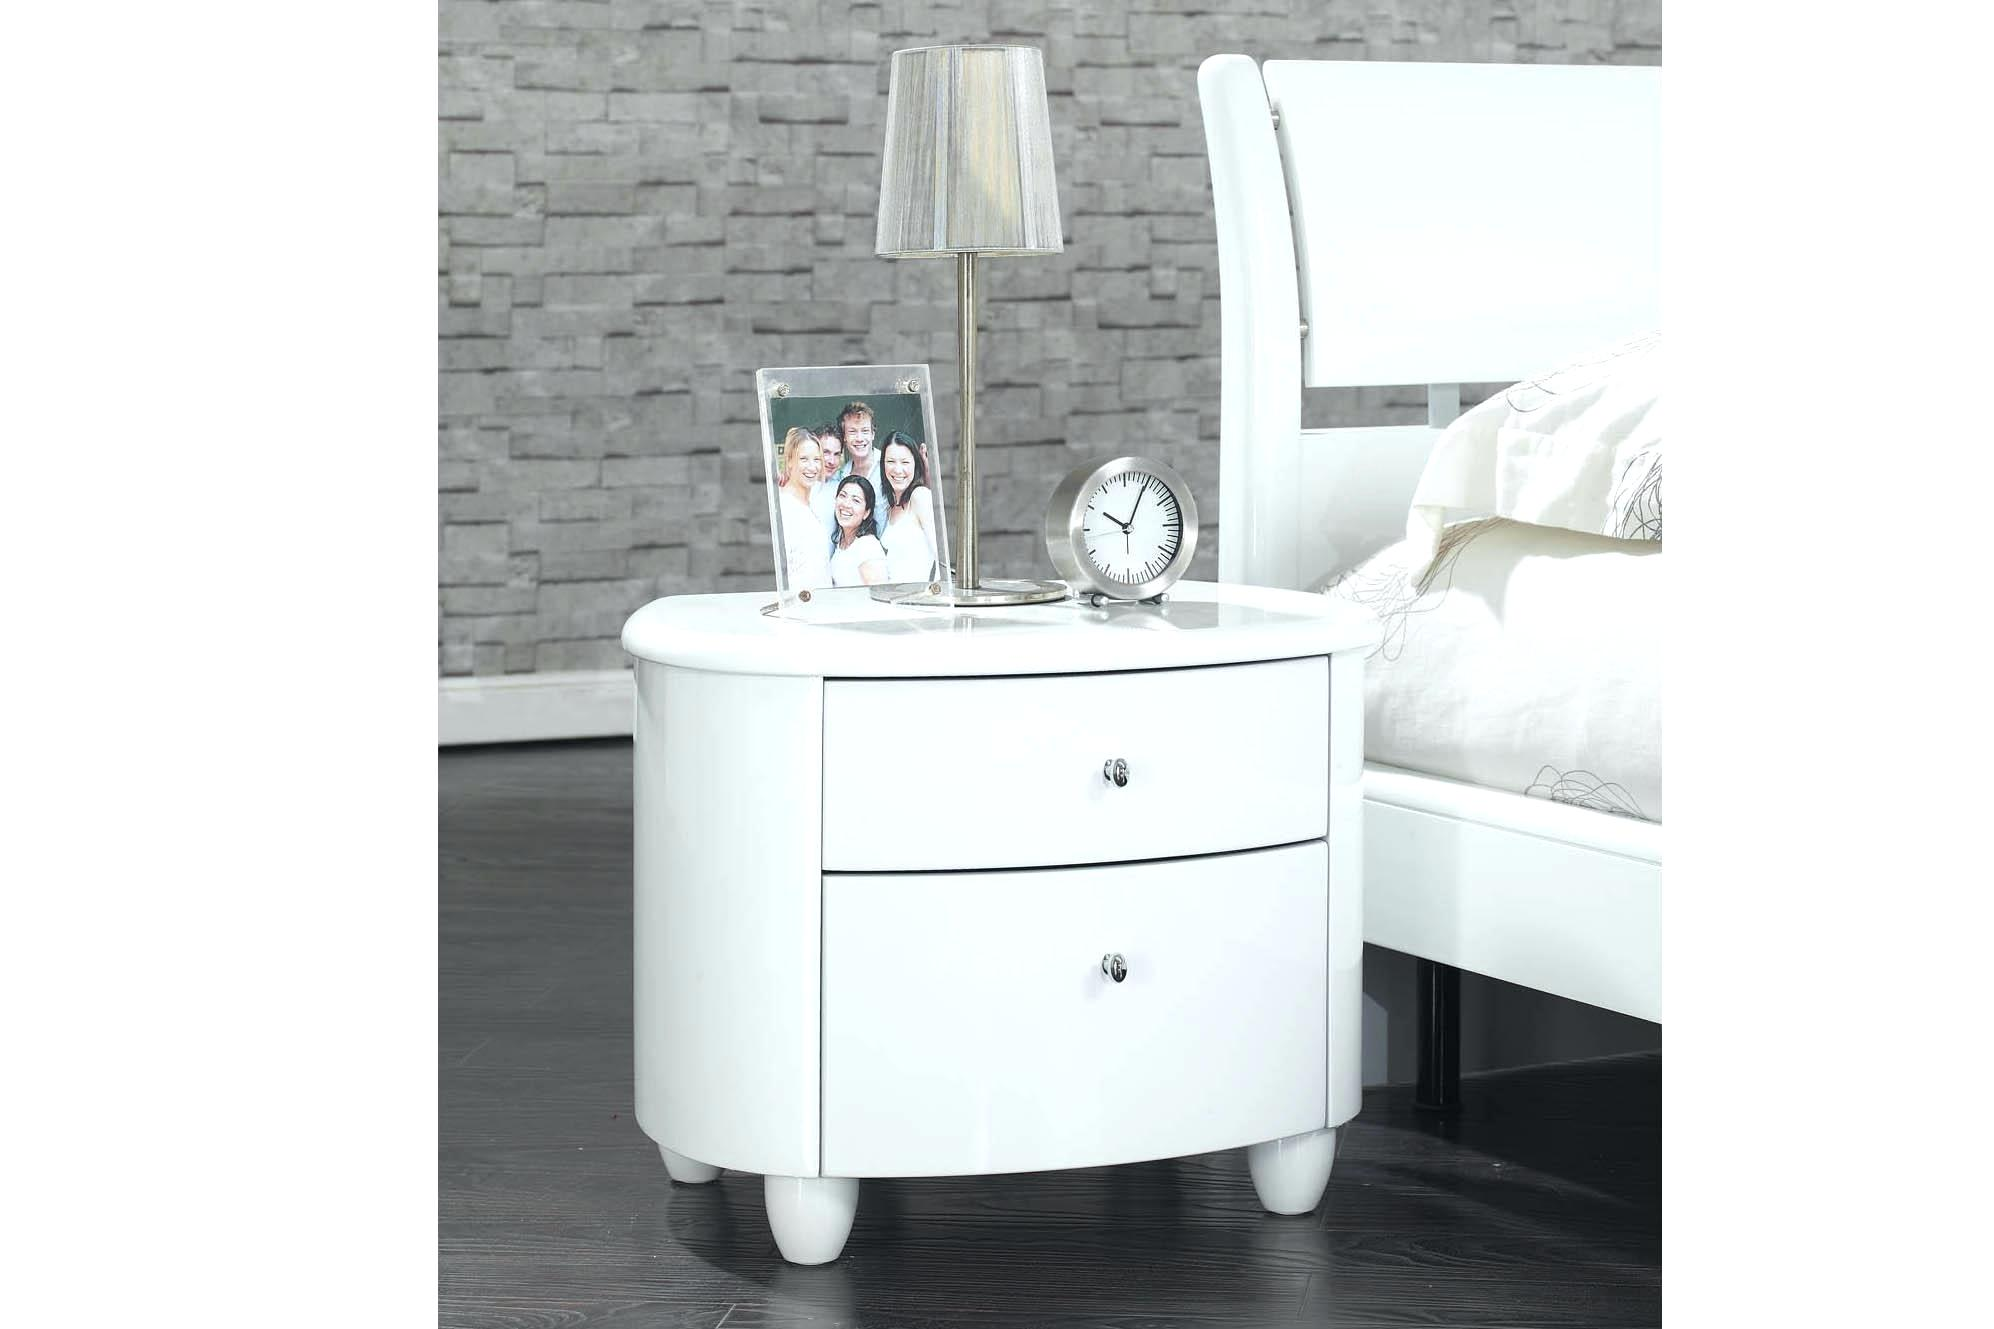 the fantastic unbelievable target locker nightstand ideas hotxpress red accent tables night stands black metal blue full size ikea cube organizer steel table legs square storage